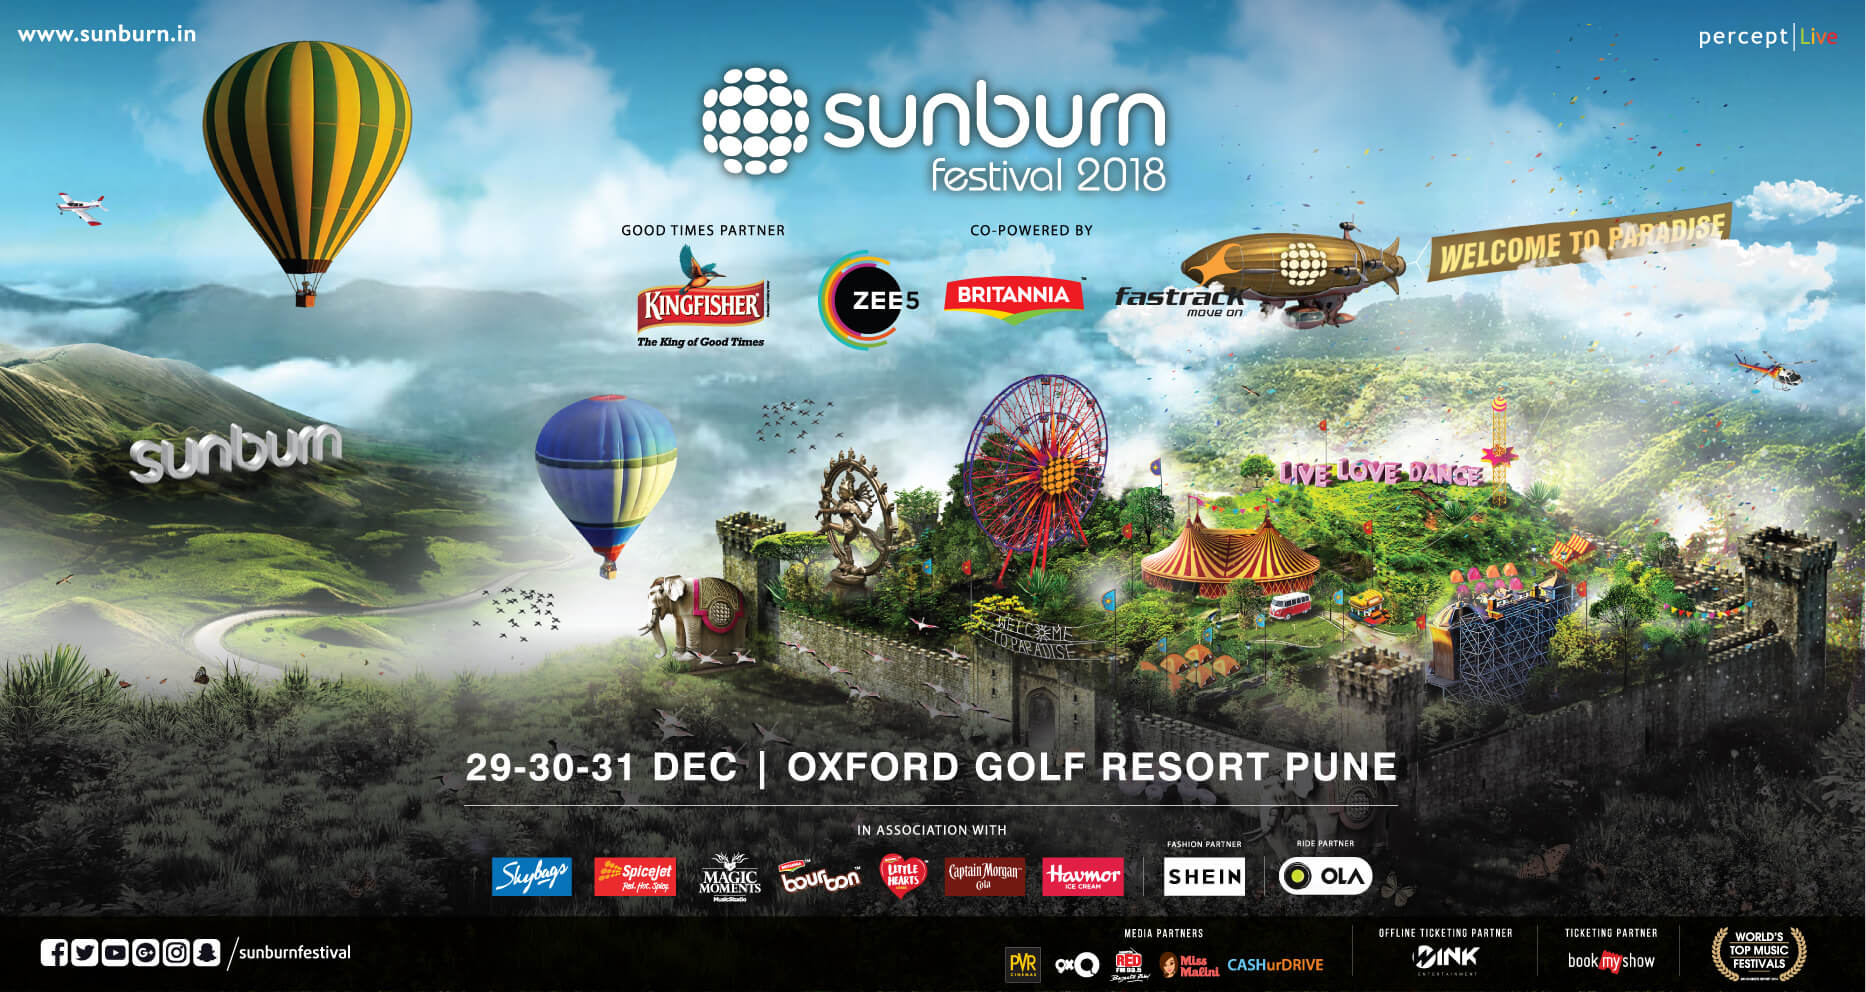 Sunburn Festival 2018 Returns to the Hills of Pune for NYE